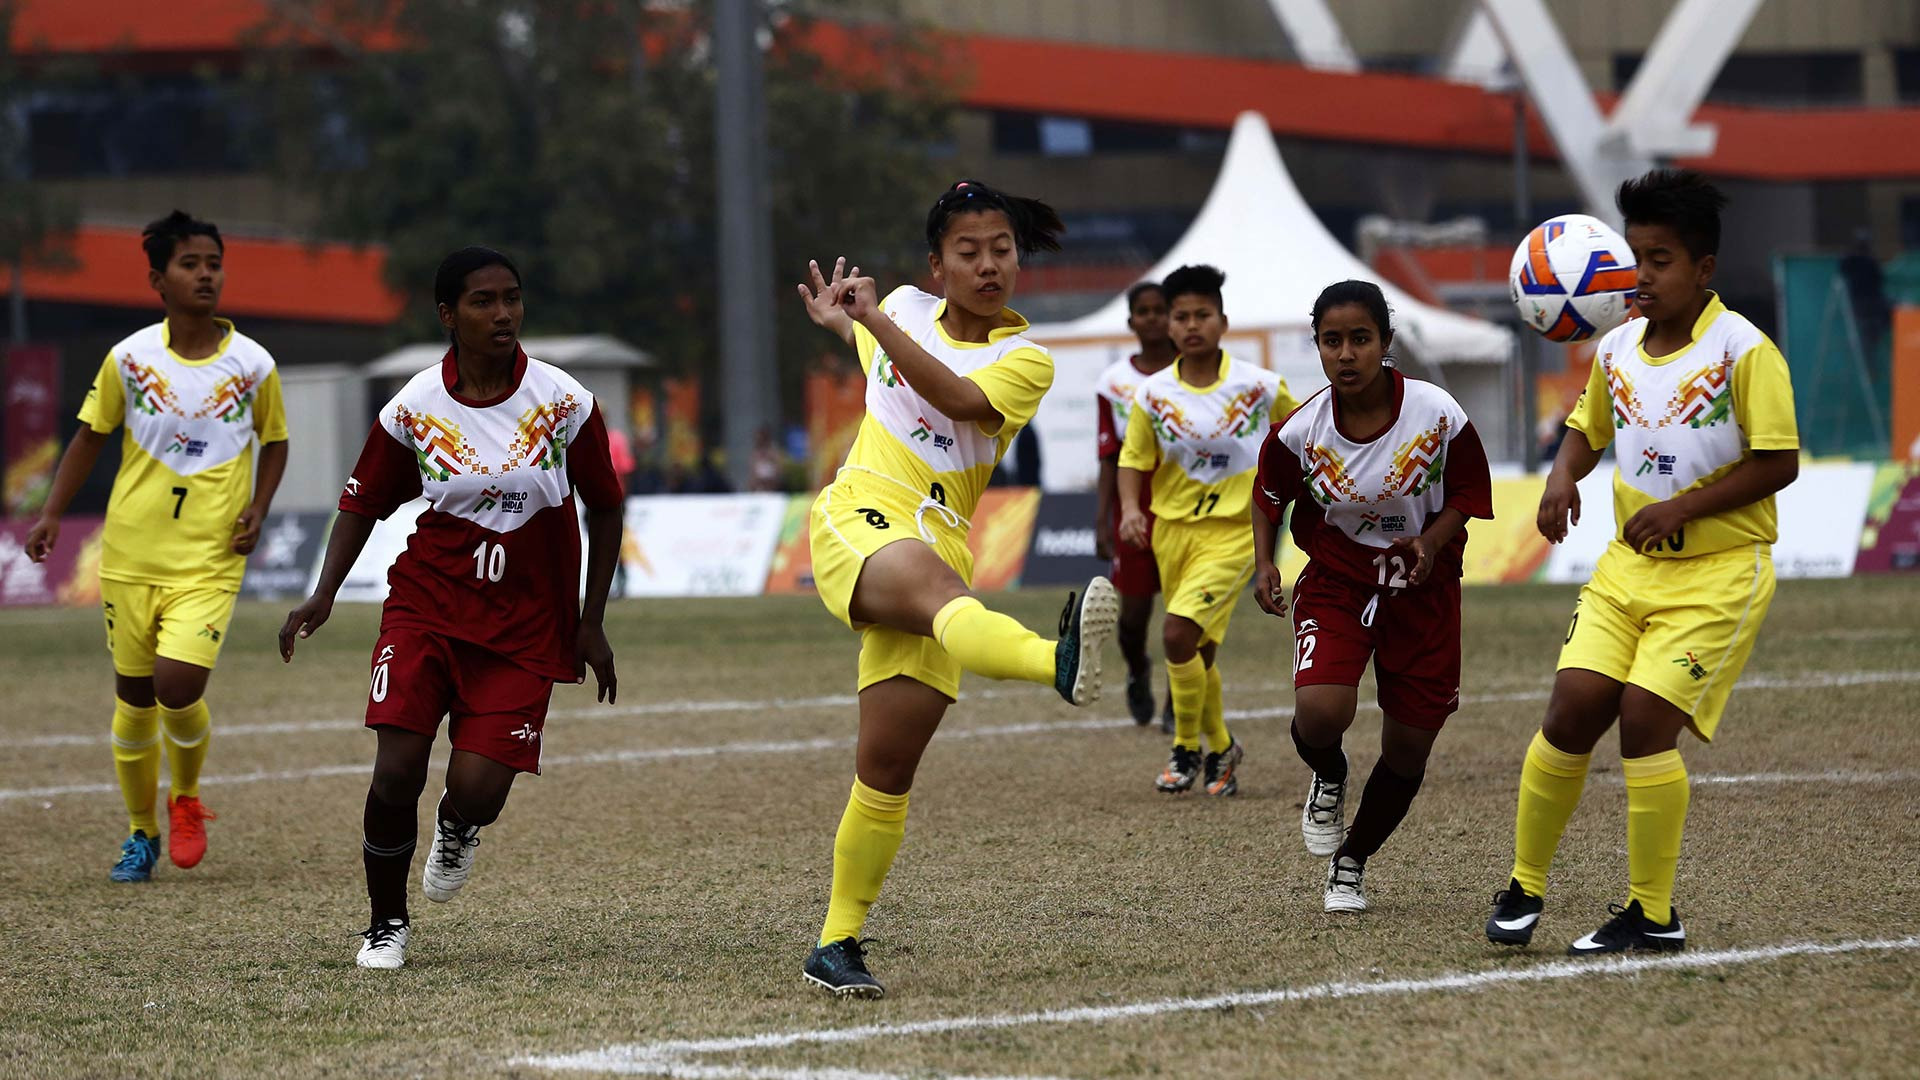 e41bc88df4 Manipur and West Bengal girls Football team in action during 1st Khelo India  School Games.